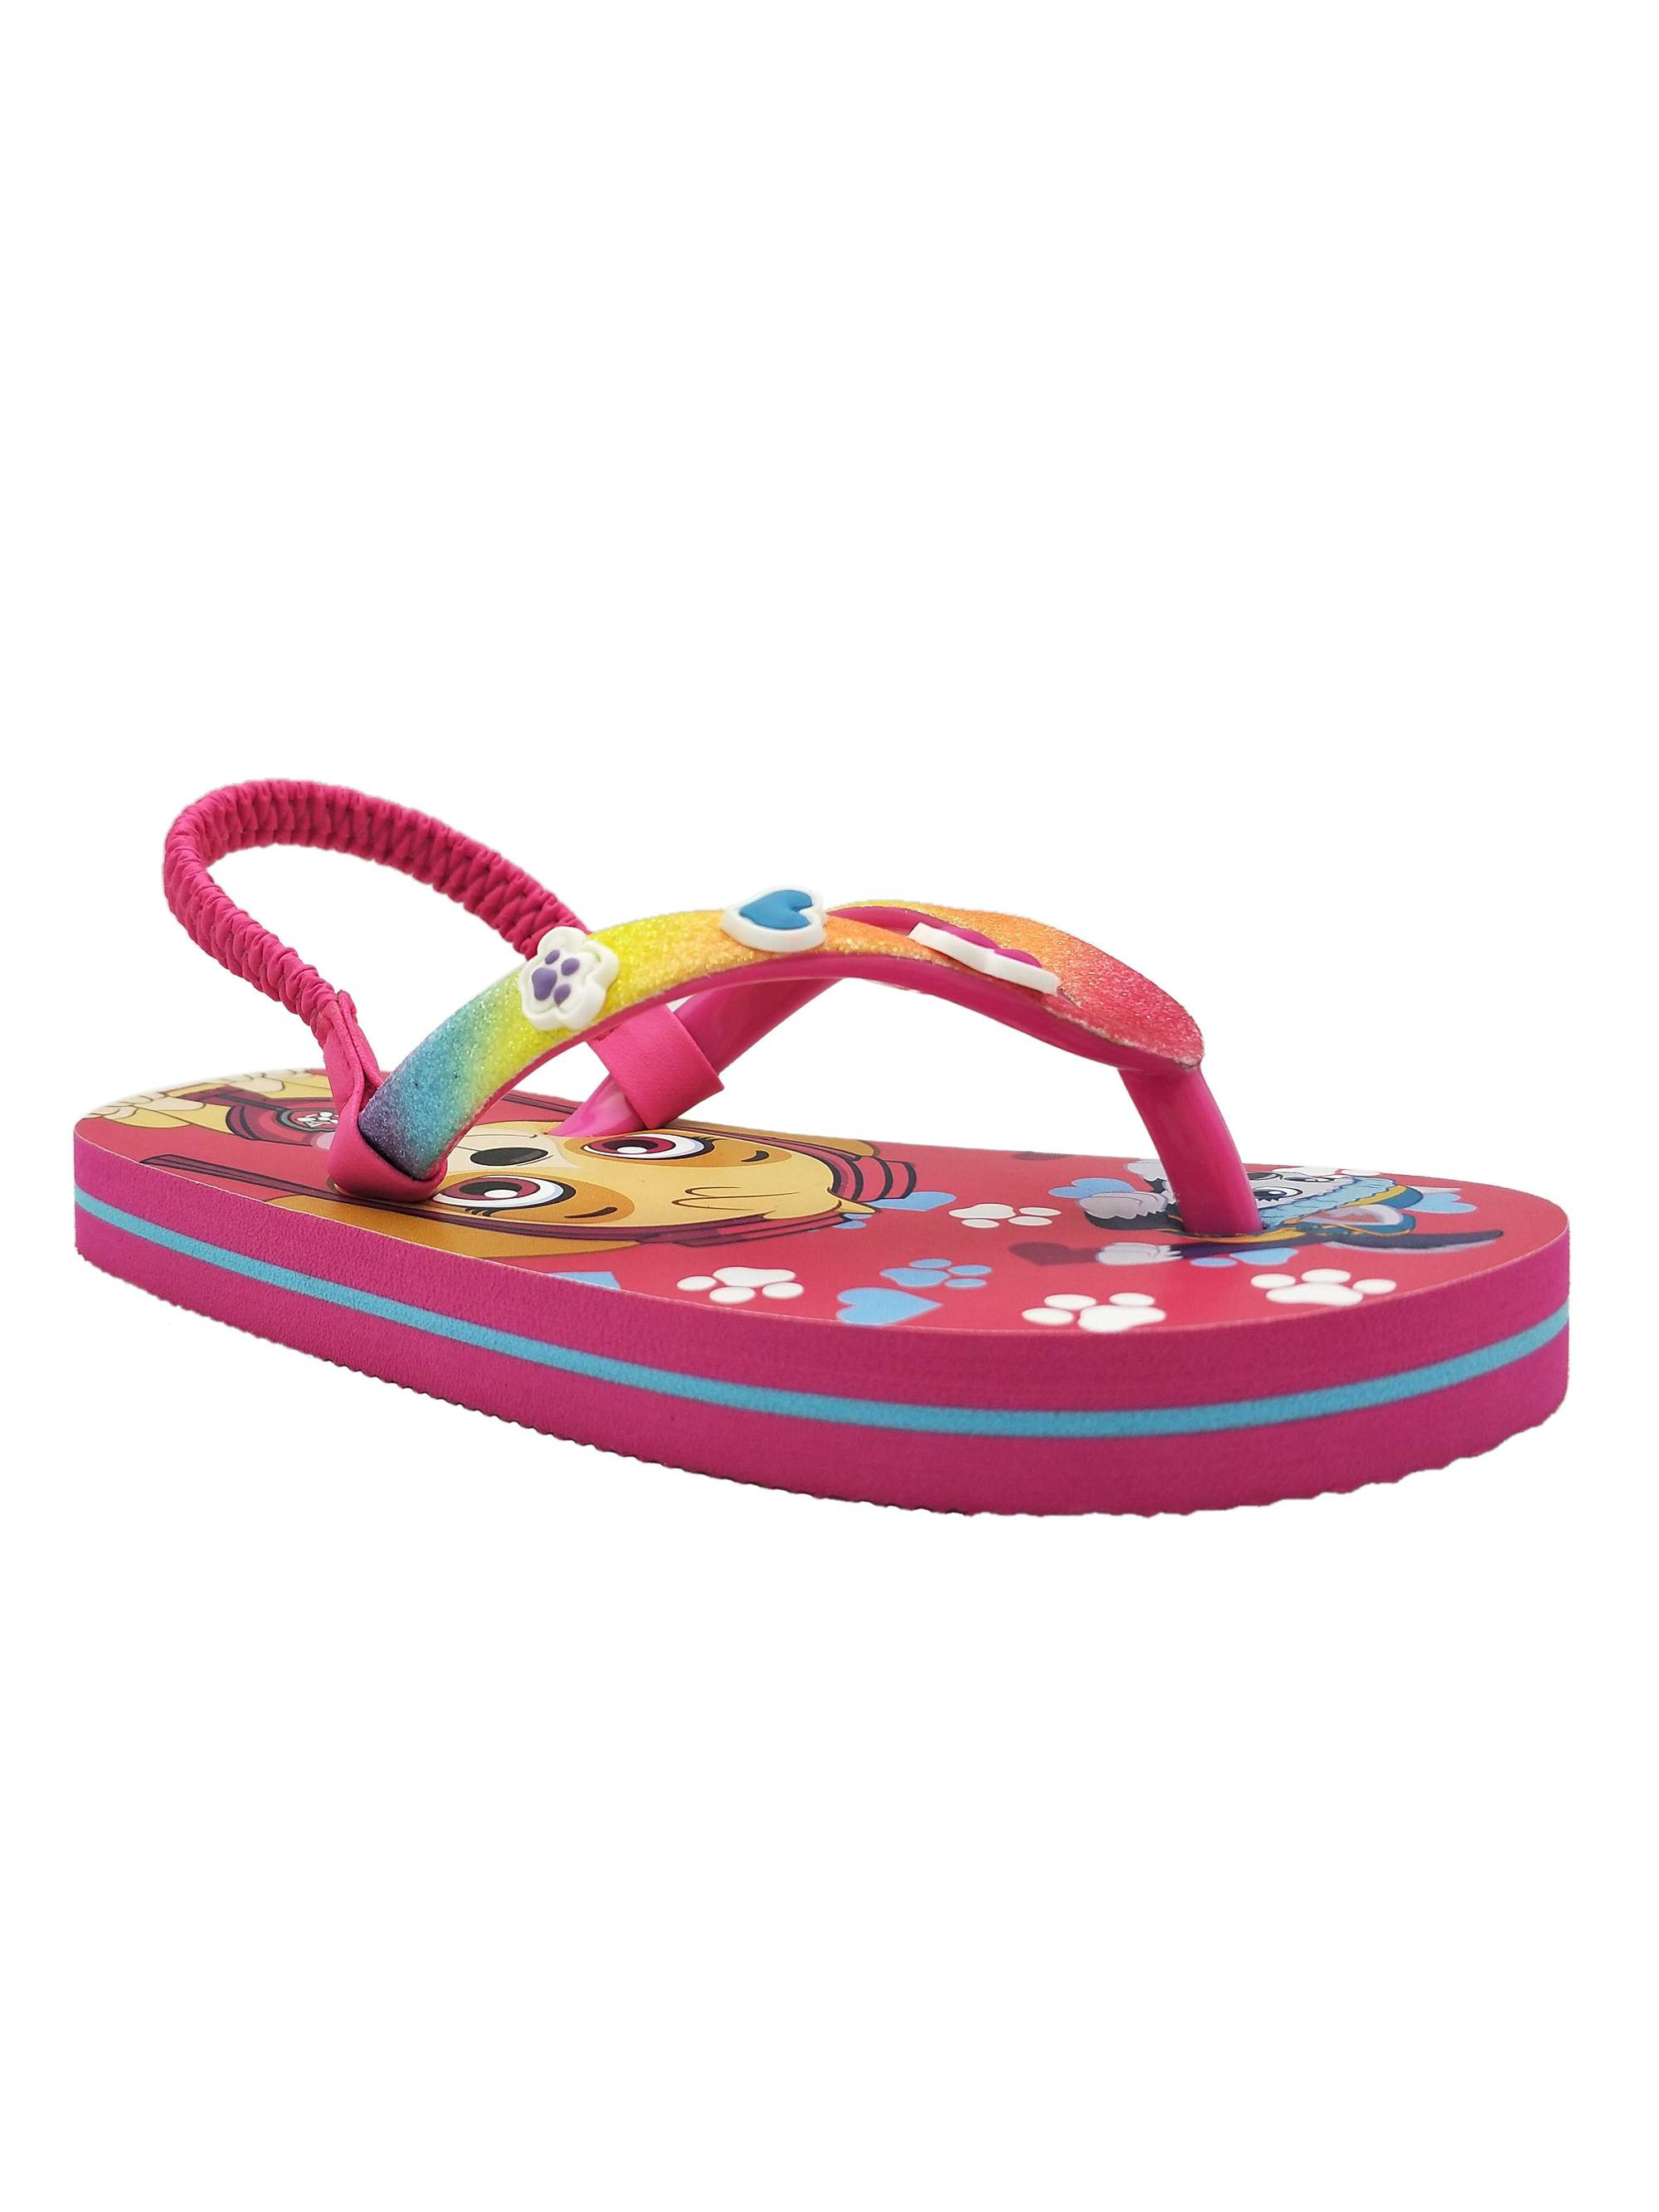 Toddler Girls' Beach Flip Flop